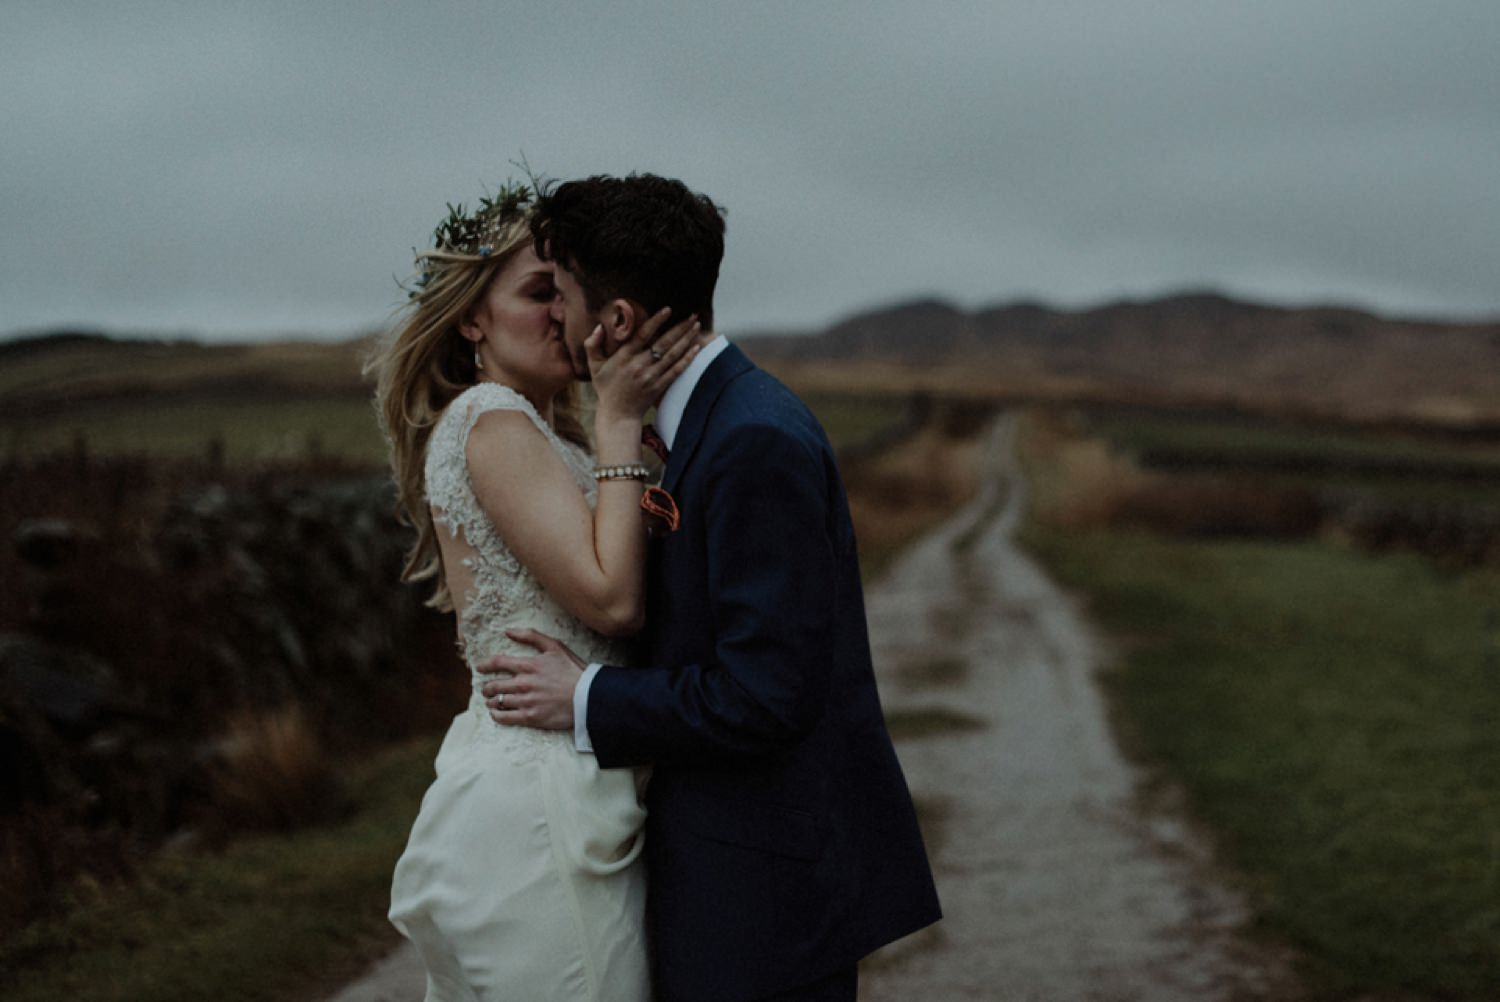 clear wedding photography